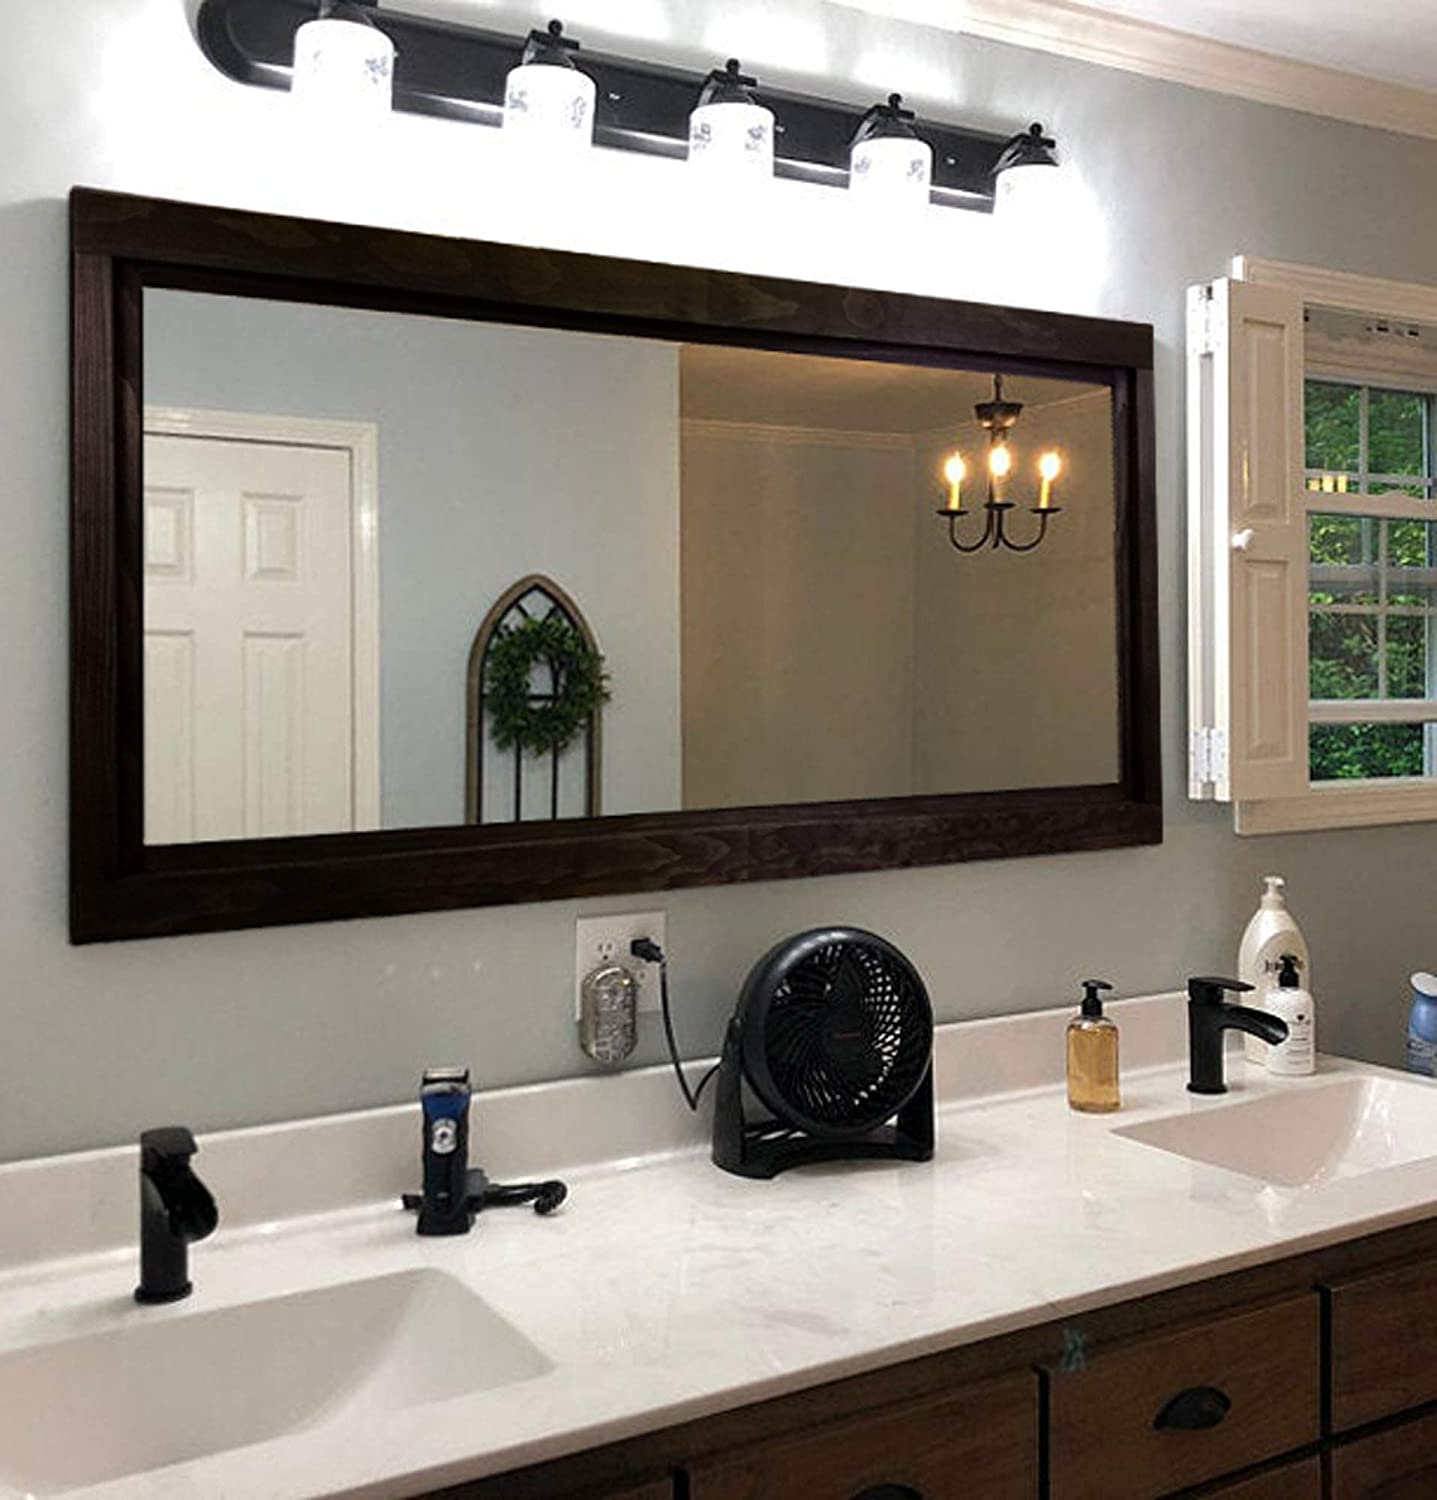 Amazon Com Farmhouse Framed Wall Mirror 20 Stain Colors Vanity Mirror Rustic Home Decor Double Vanity Mirror Over Sink Mirror Wall Mount Black Frame Bathroom Mirror Large Mirror Handmade